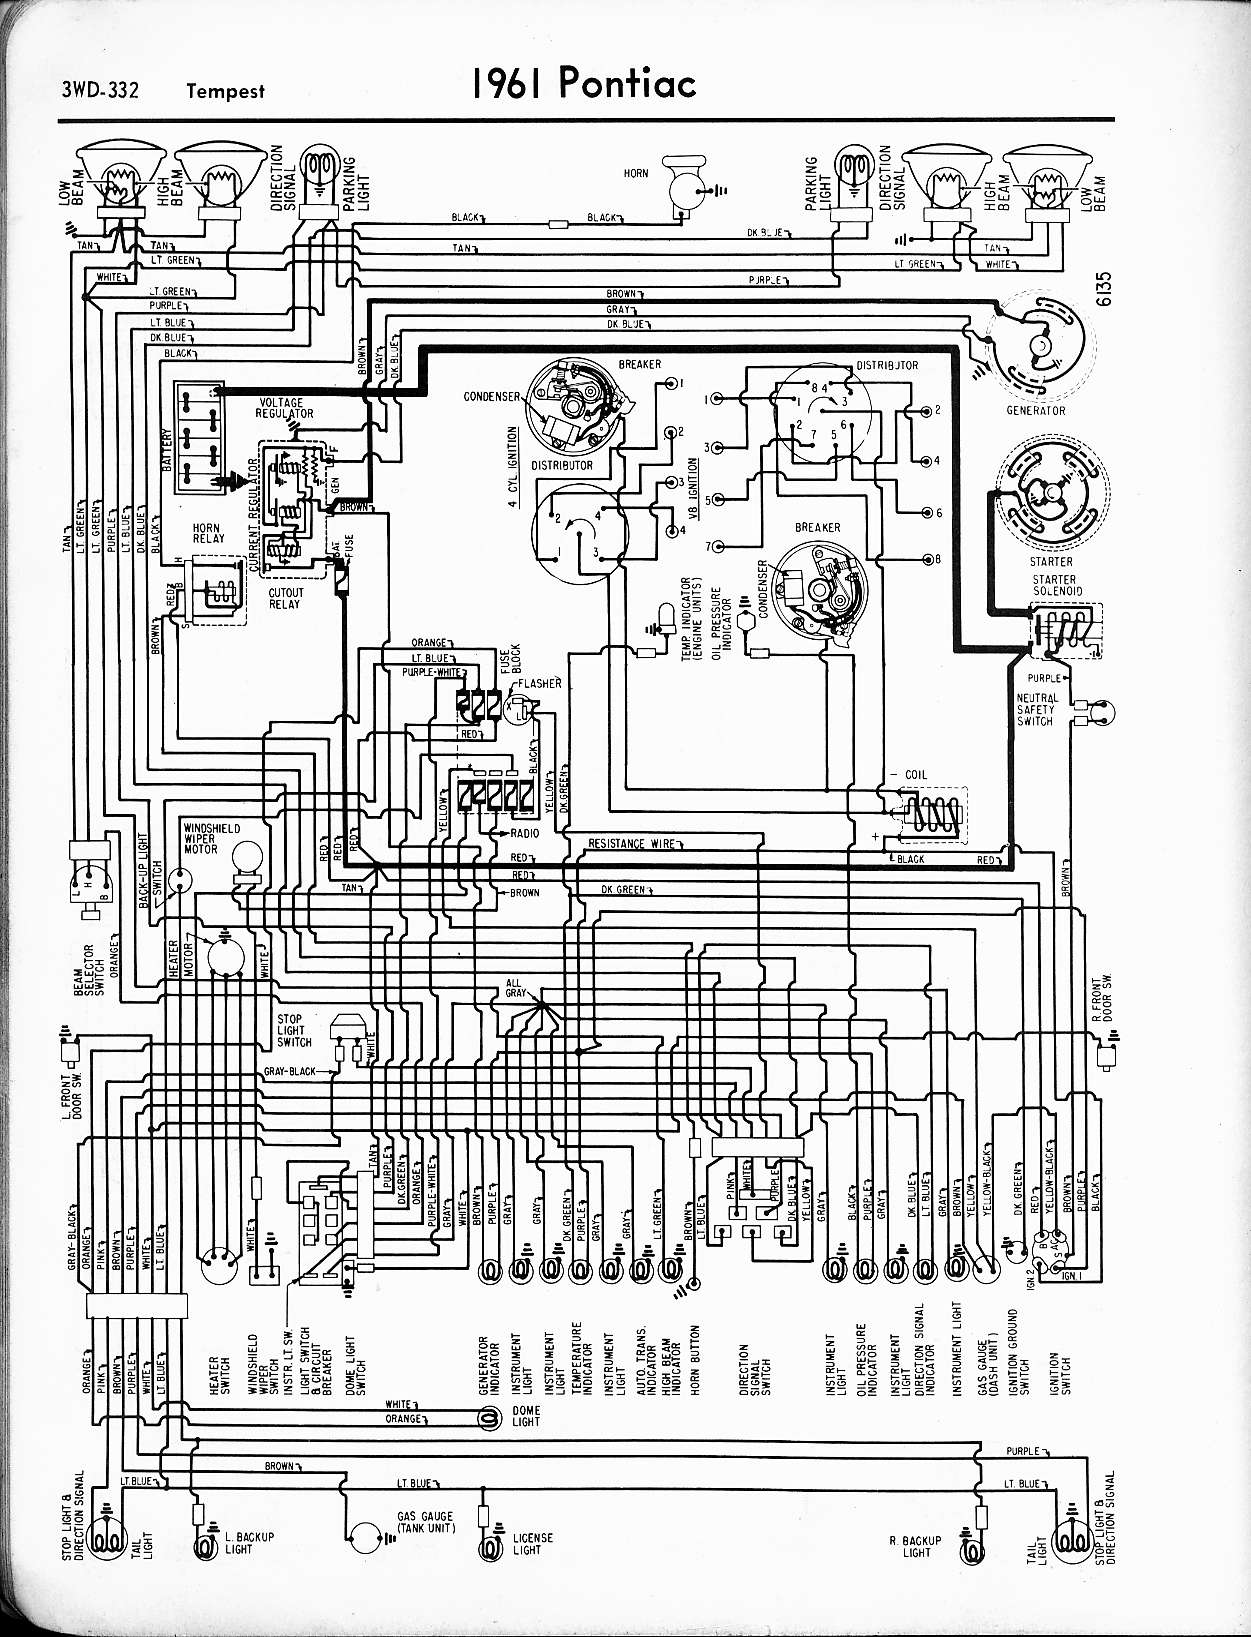 1968 oldsmobile cutlass wiring diagram 1968 pontiac catalina wiring diagram 1968 wiring diagrams online wallace racing wiring diagrams